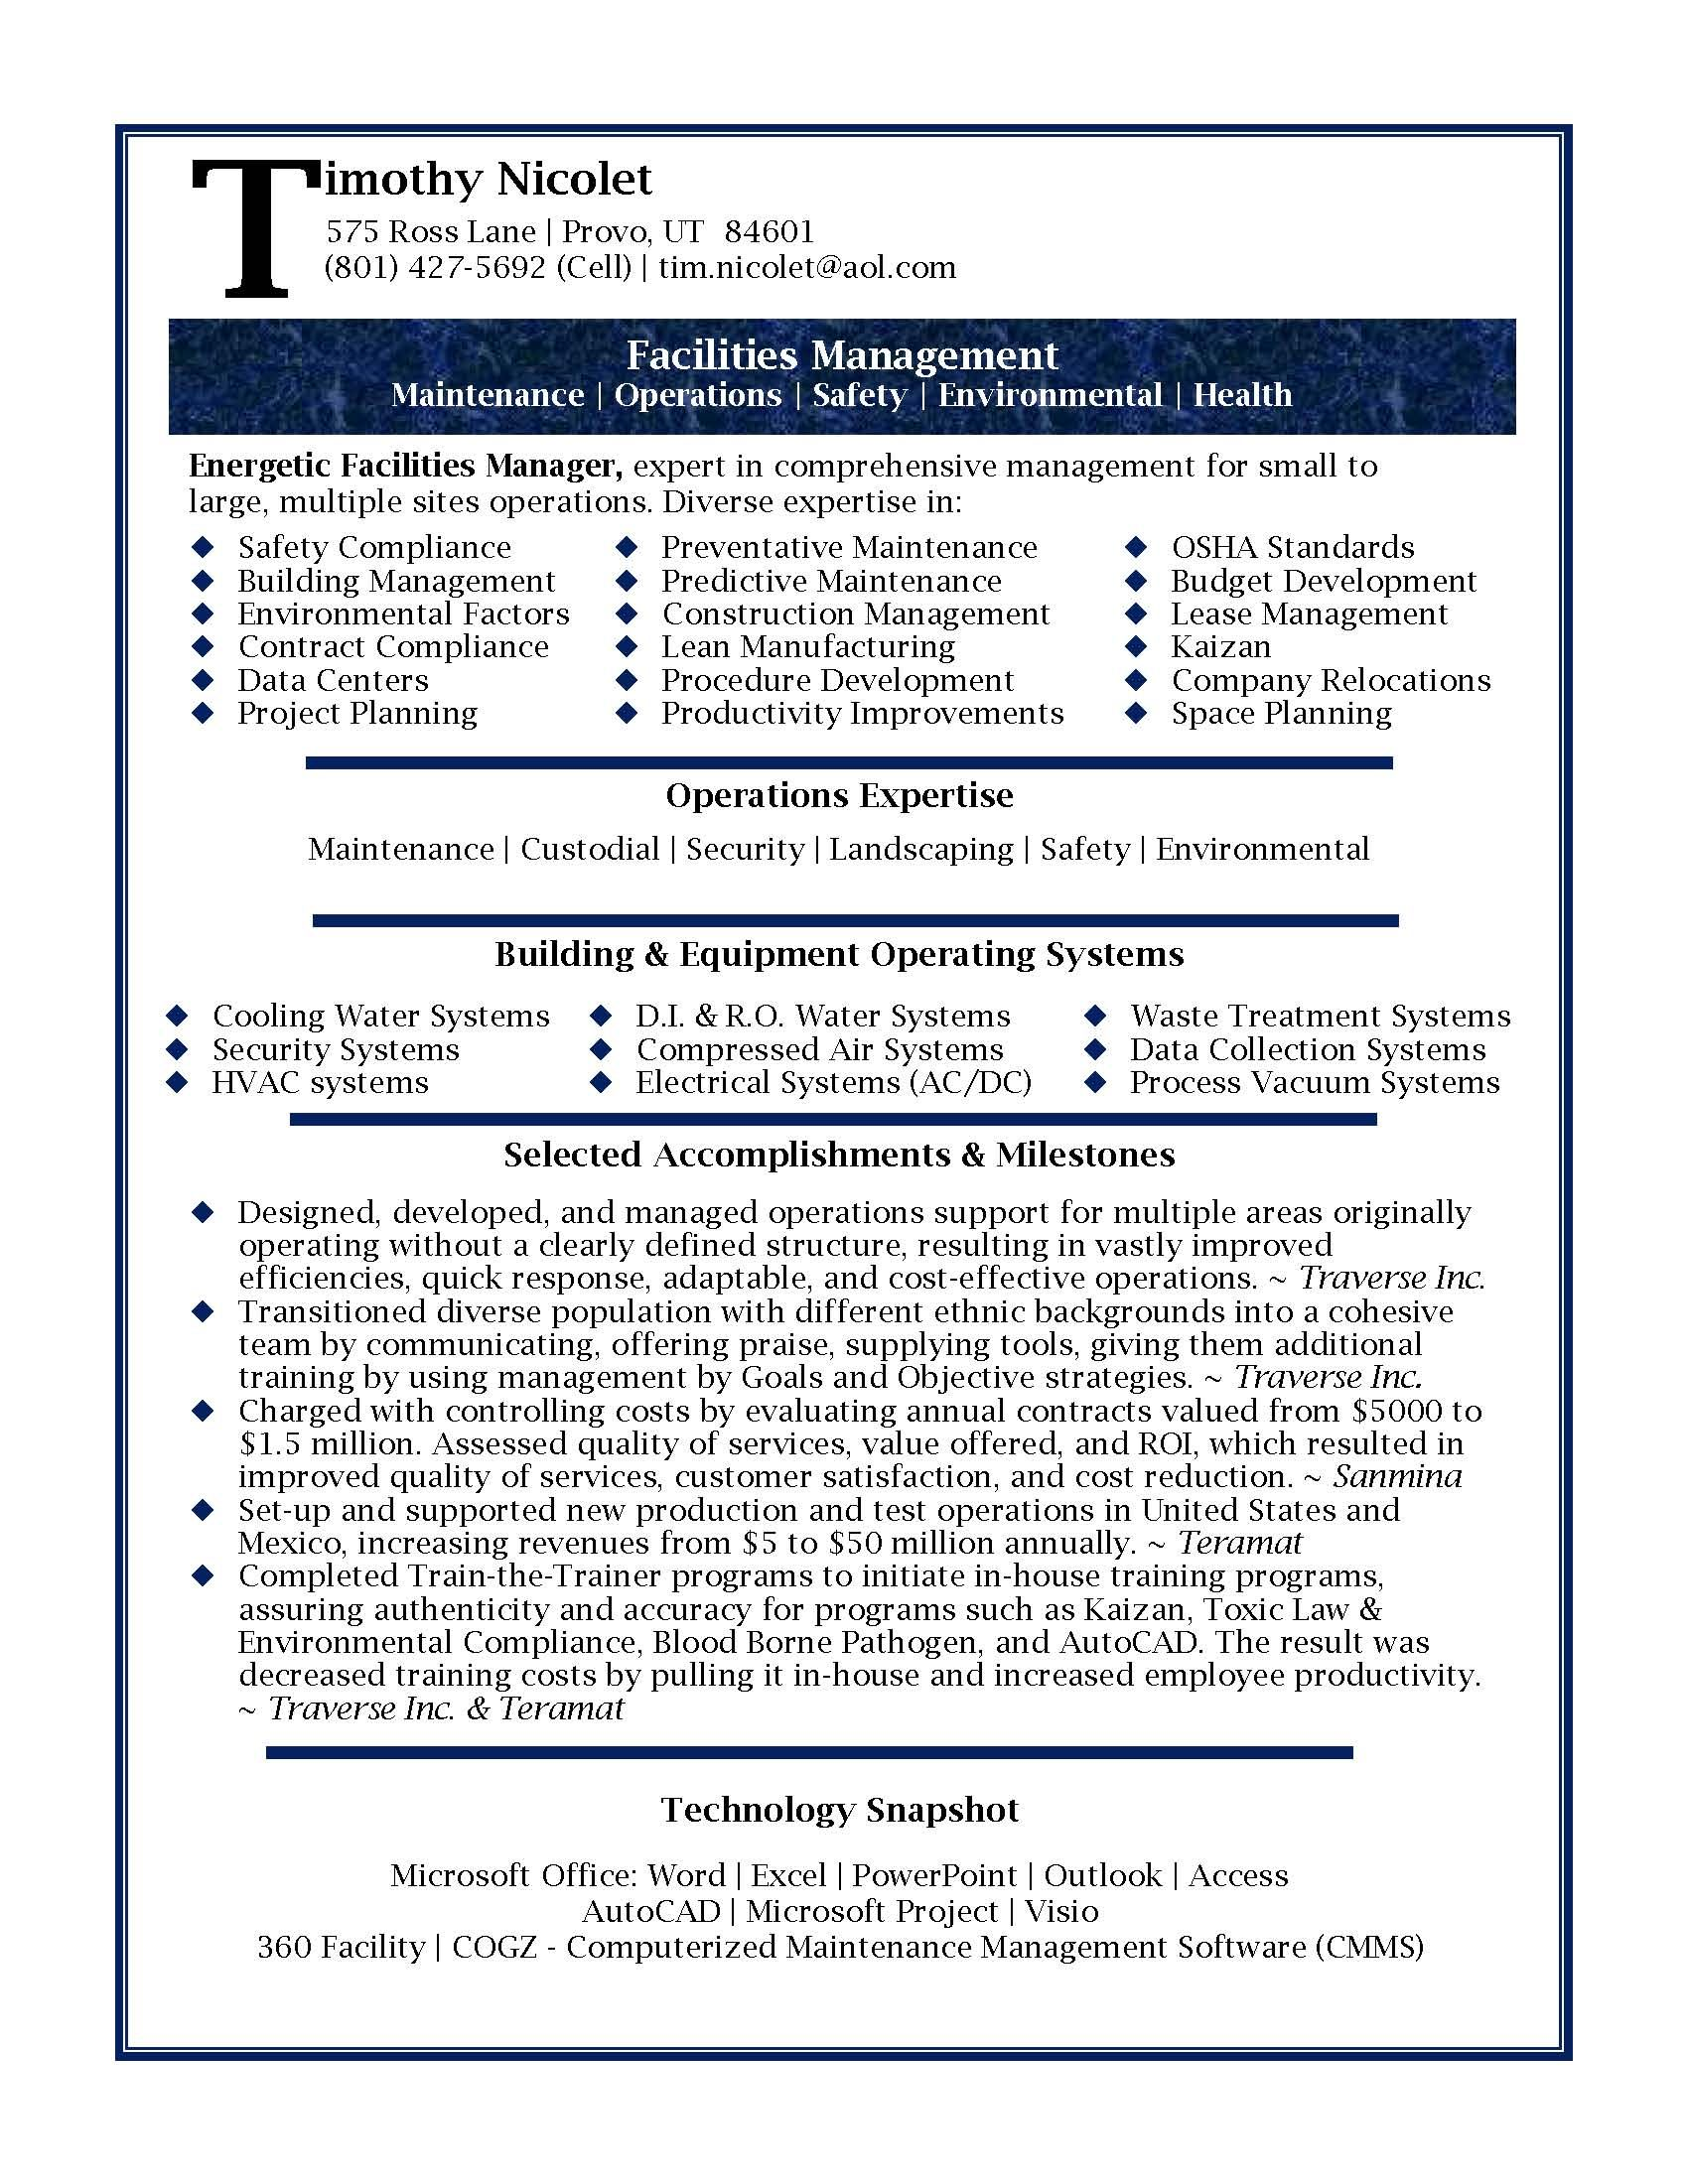 Professional Resume Samples by Julie Walraven, CMRW | Executive ...